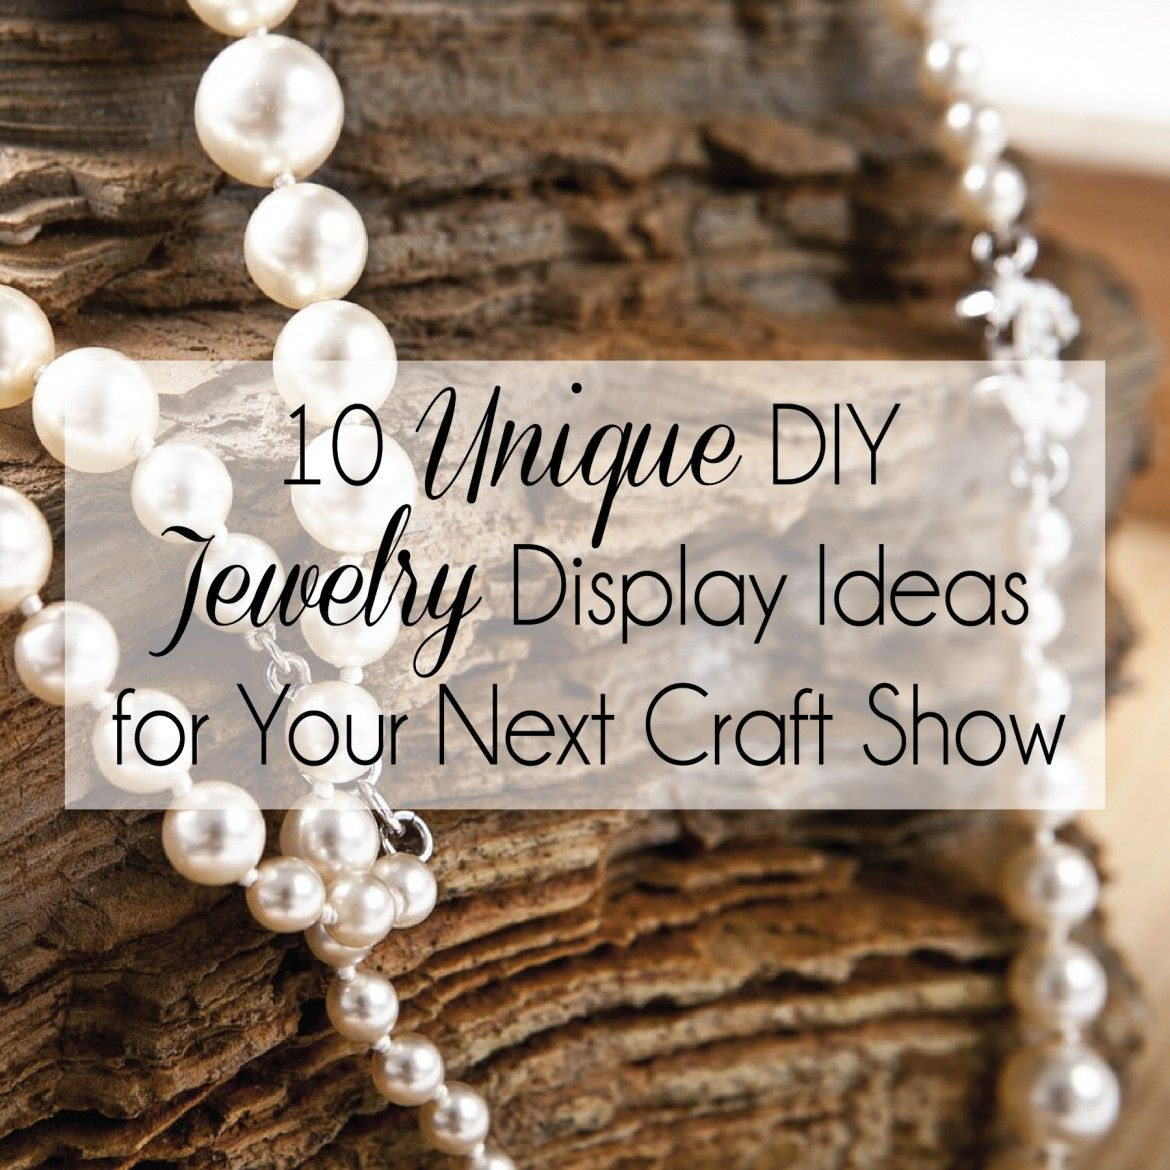 10 Unique Diy Jewelry Display Ideas For Your Next Craft Show Diy